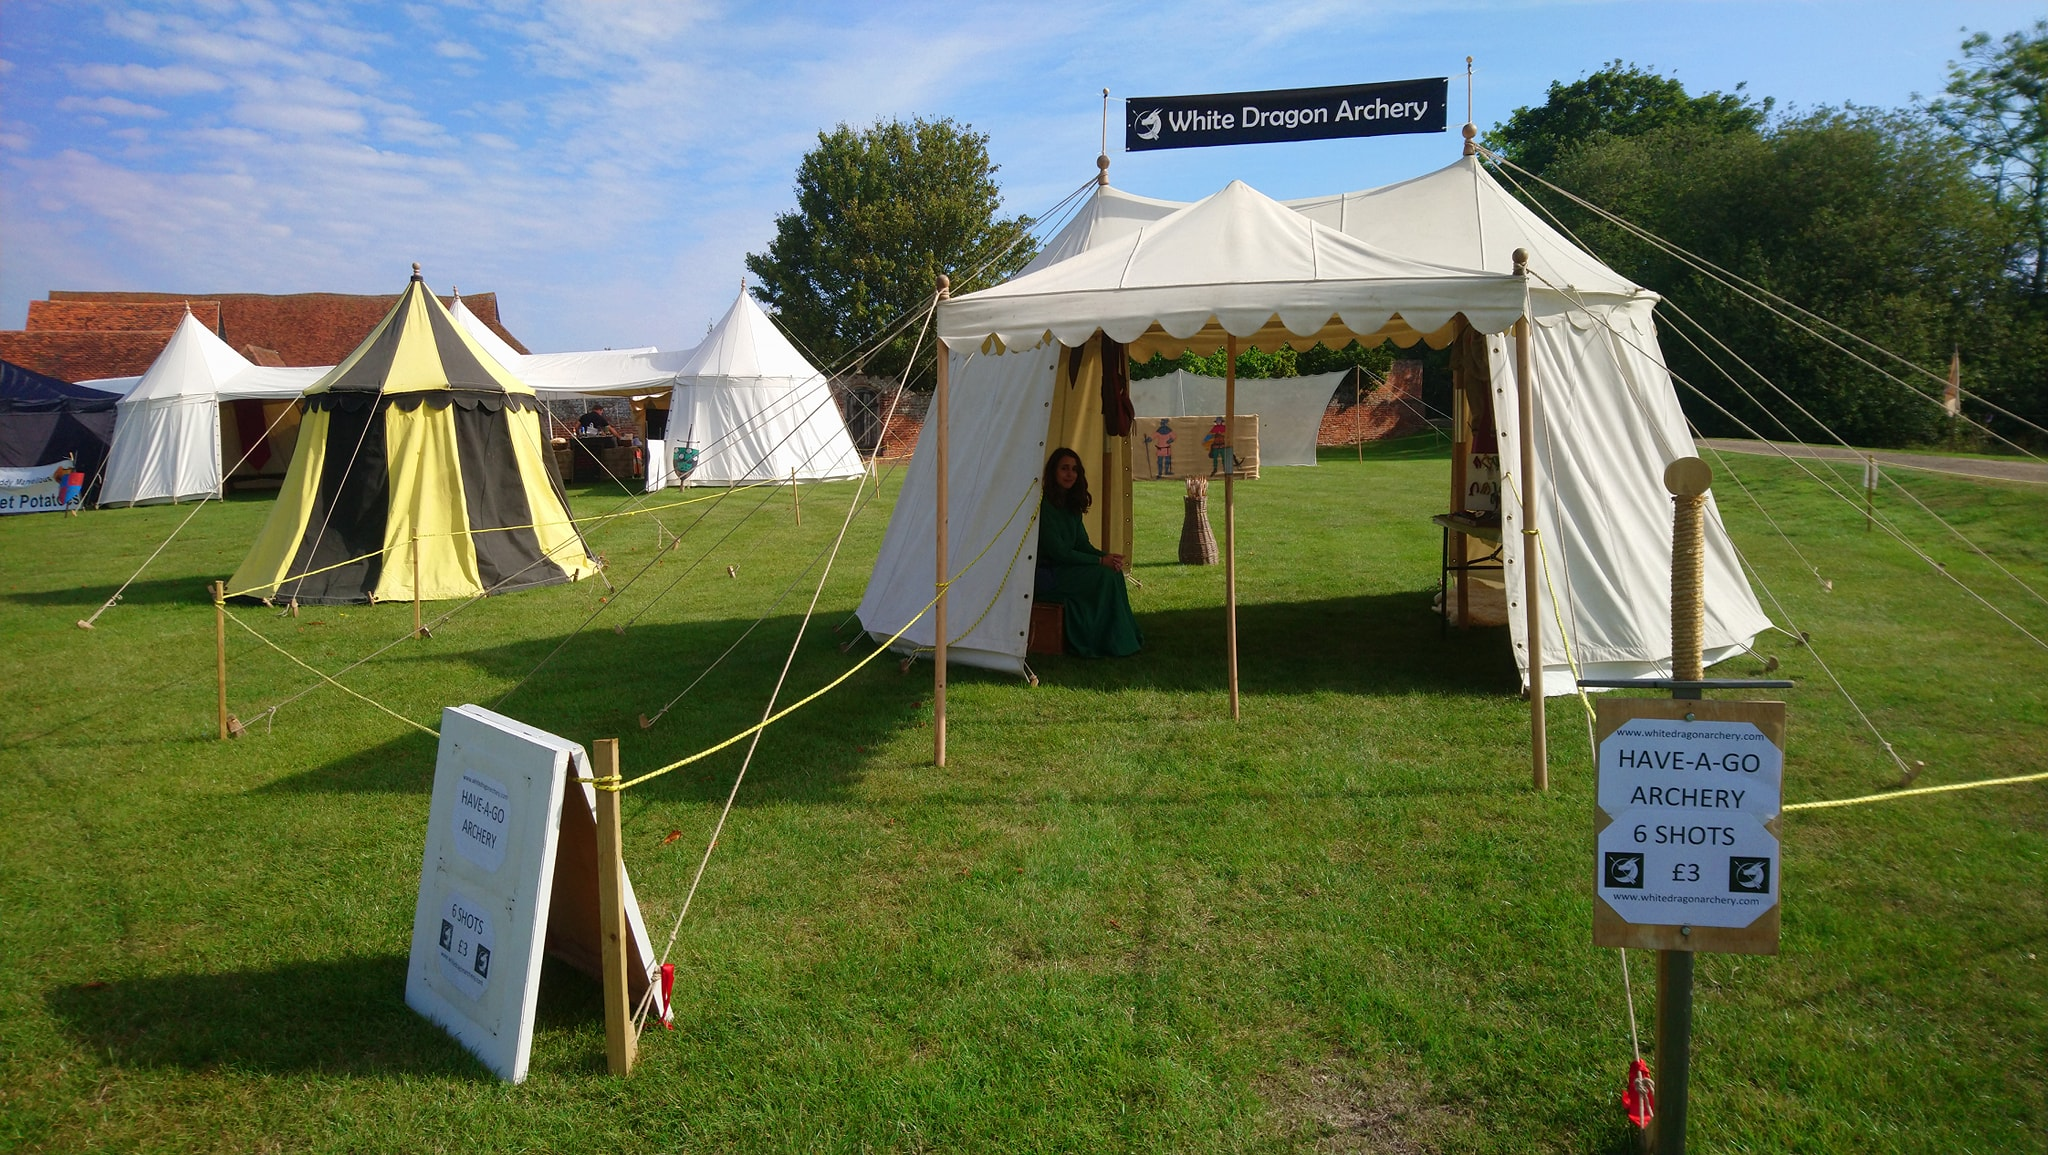 Medieval tent and have-a-go archery range at a reenactment event